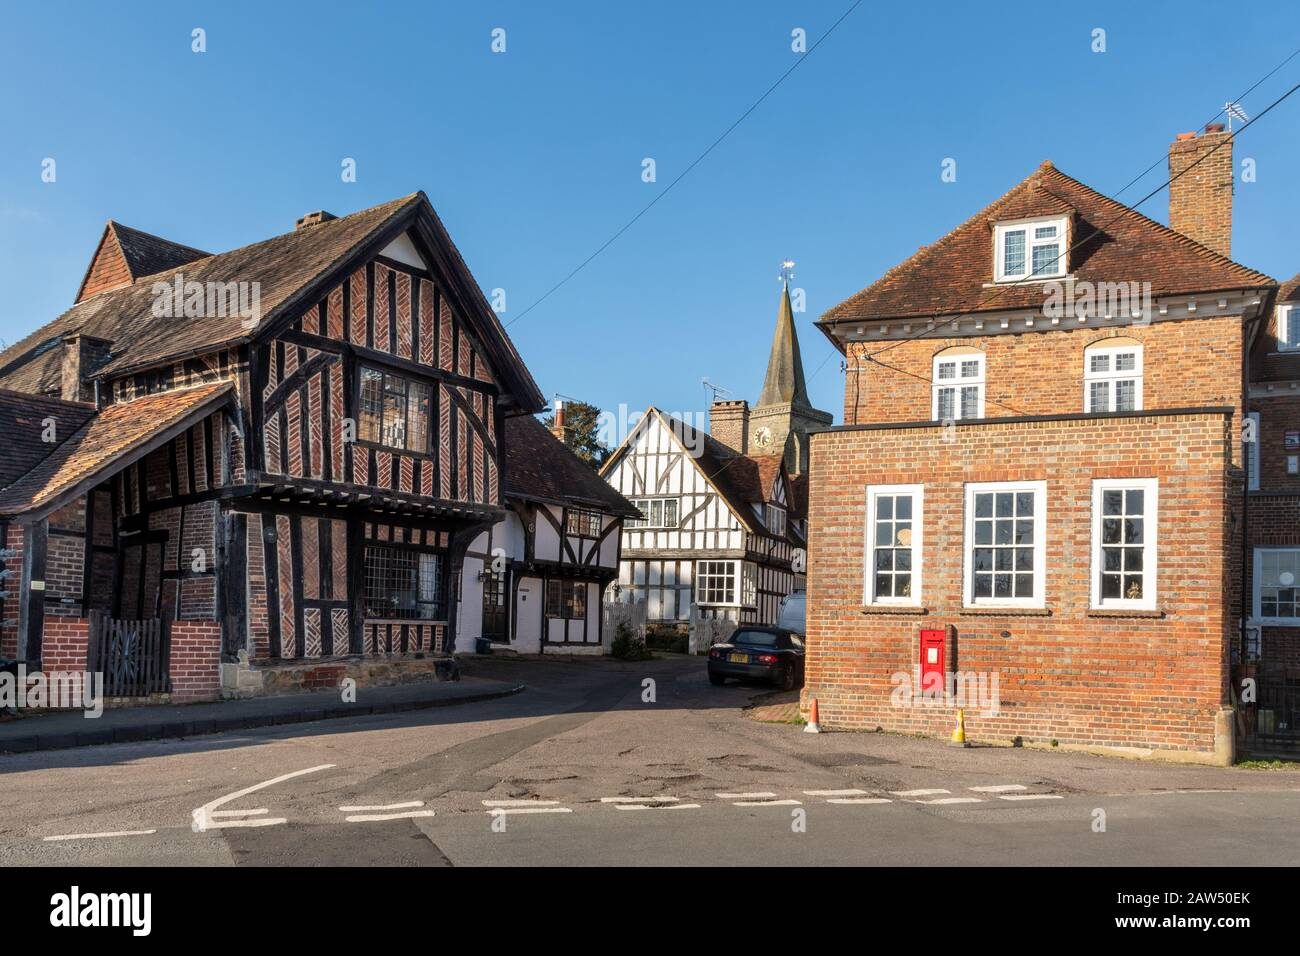 lingfield-village-in-east-surrey-uk-with-historic-listed-buildings-and-the-church-of-st-peter-and-st-paul-2AW50EK.jpg